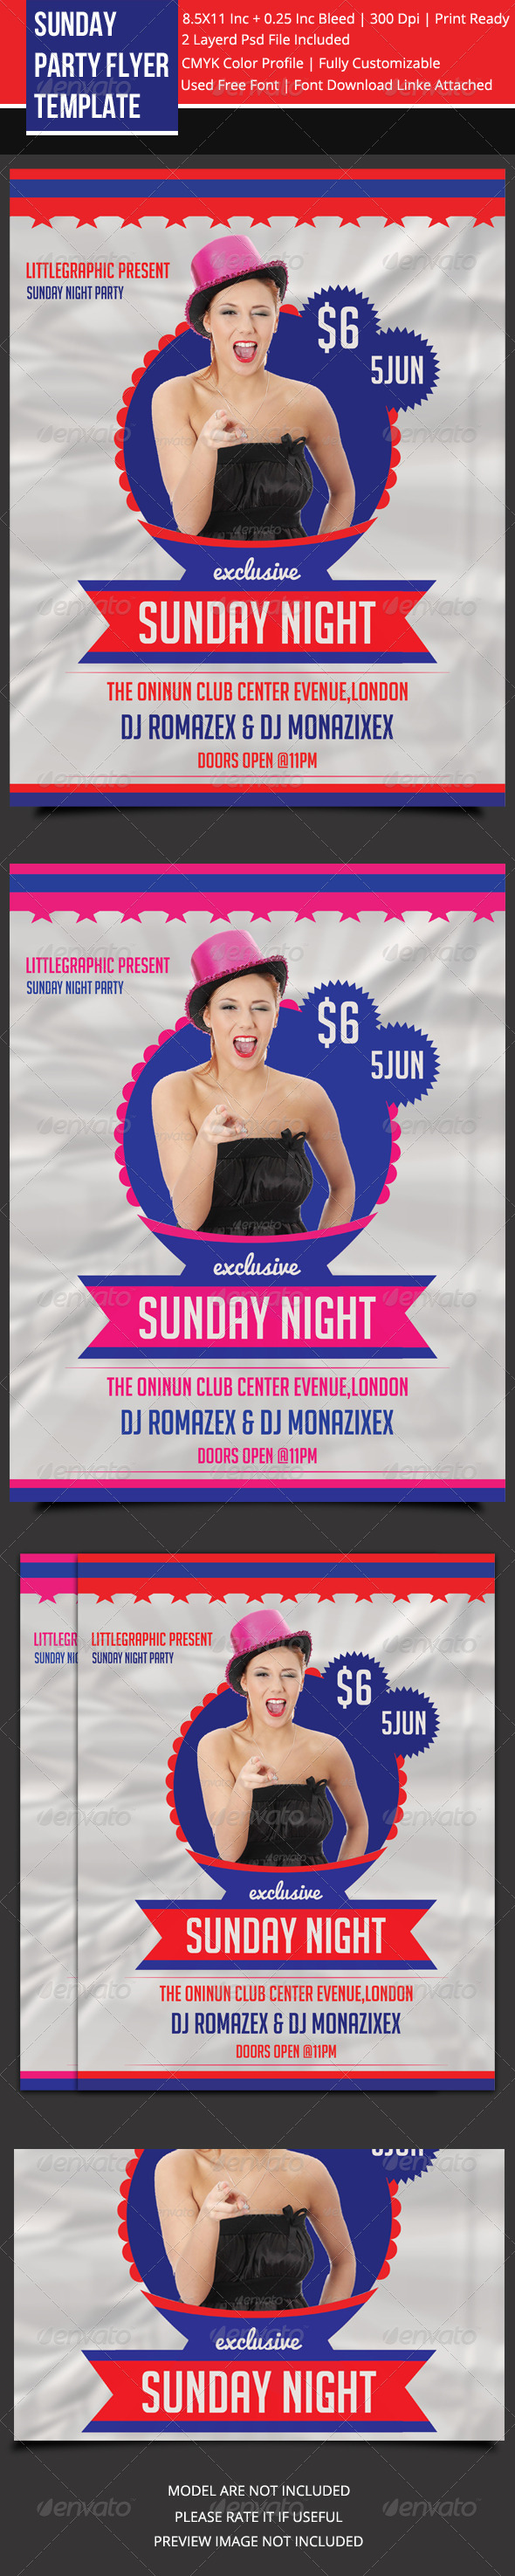 Sunday Party Flyer 2